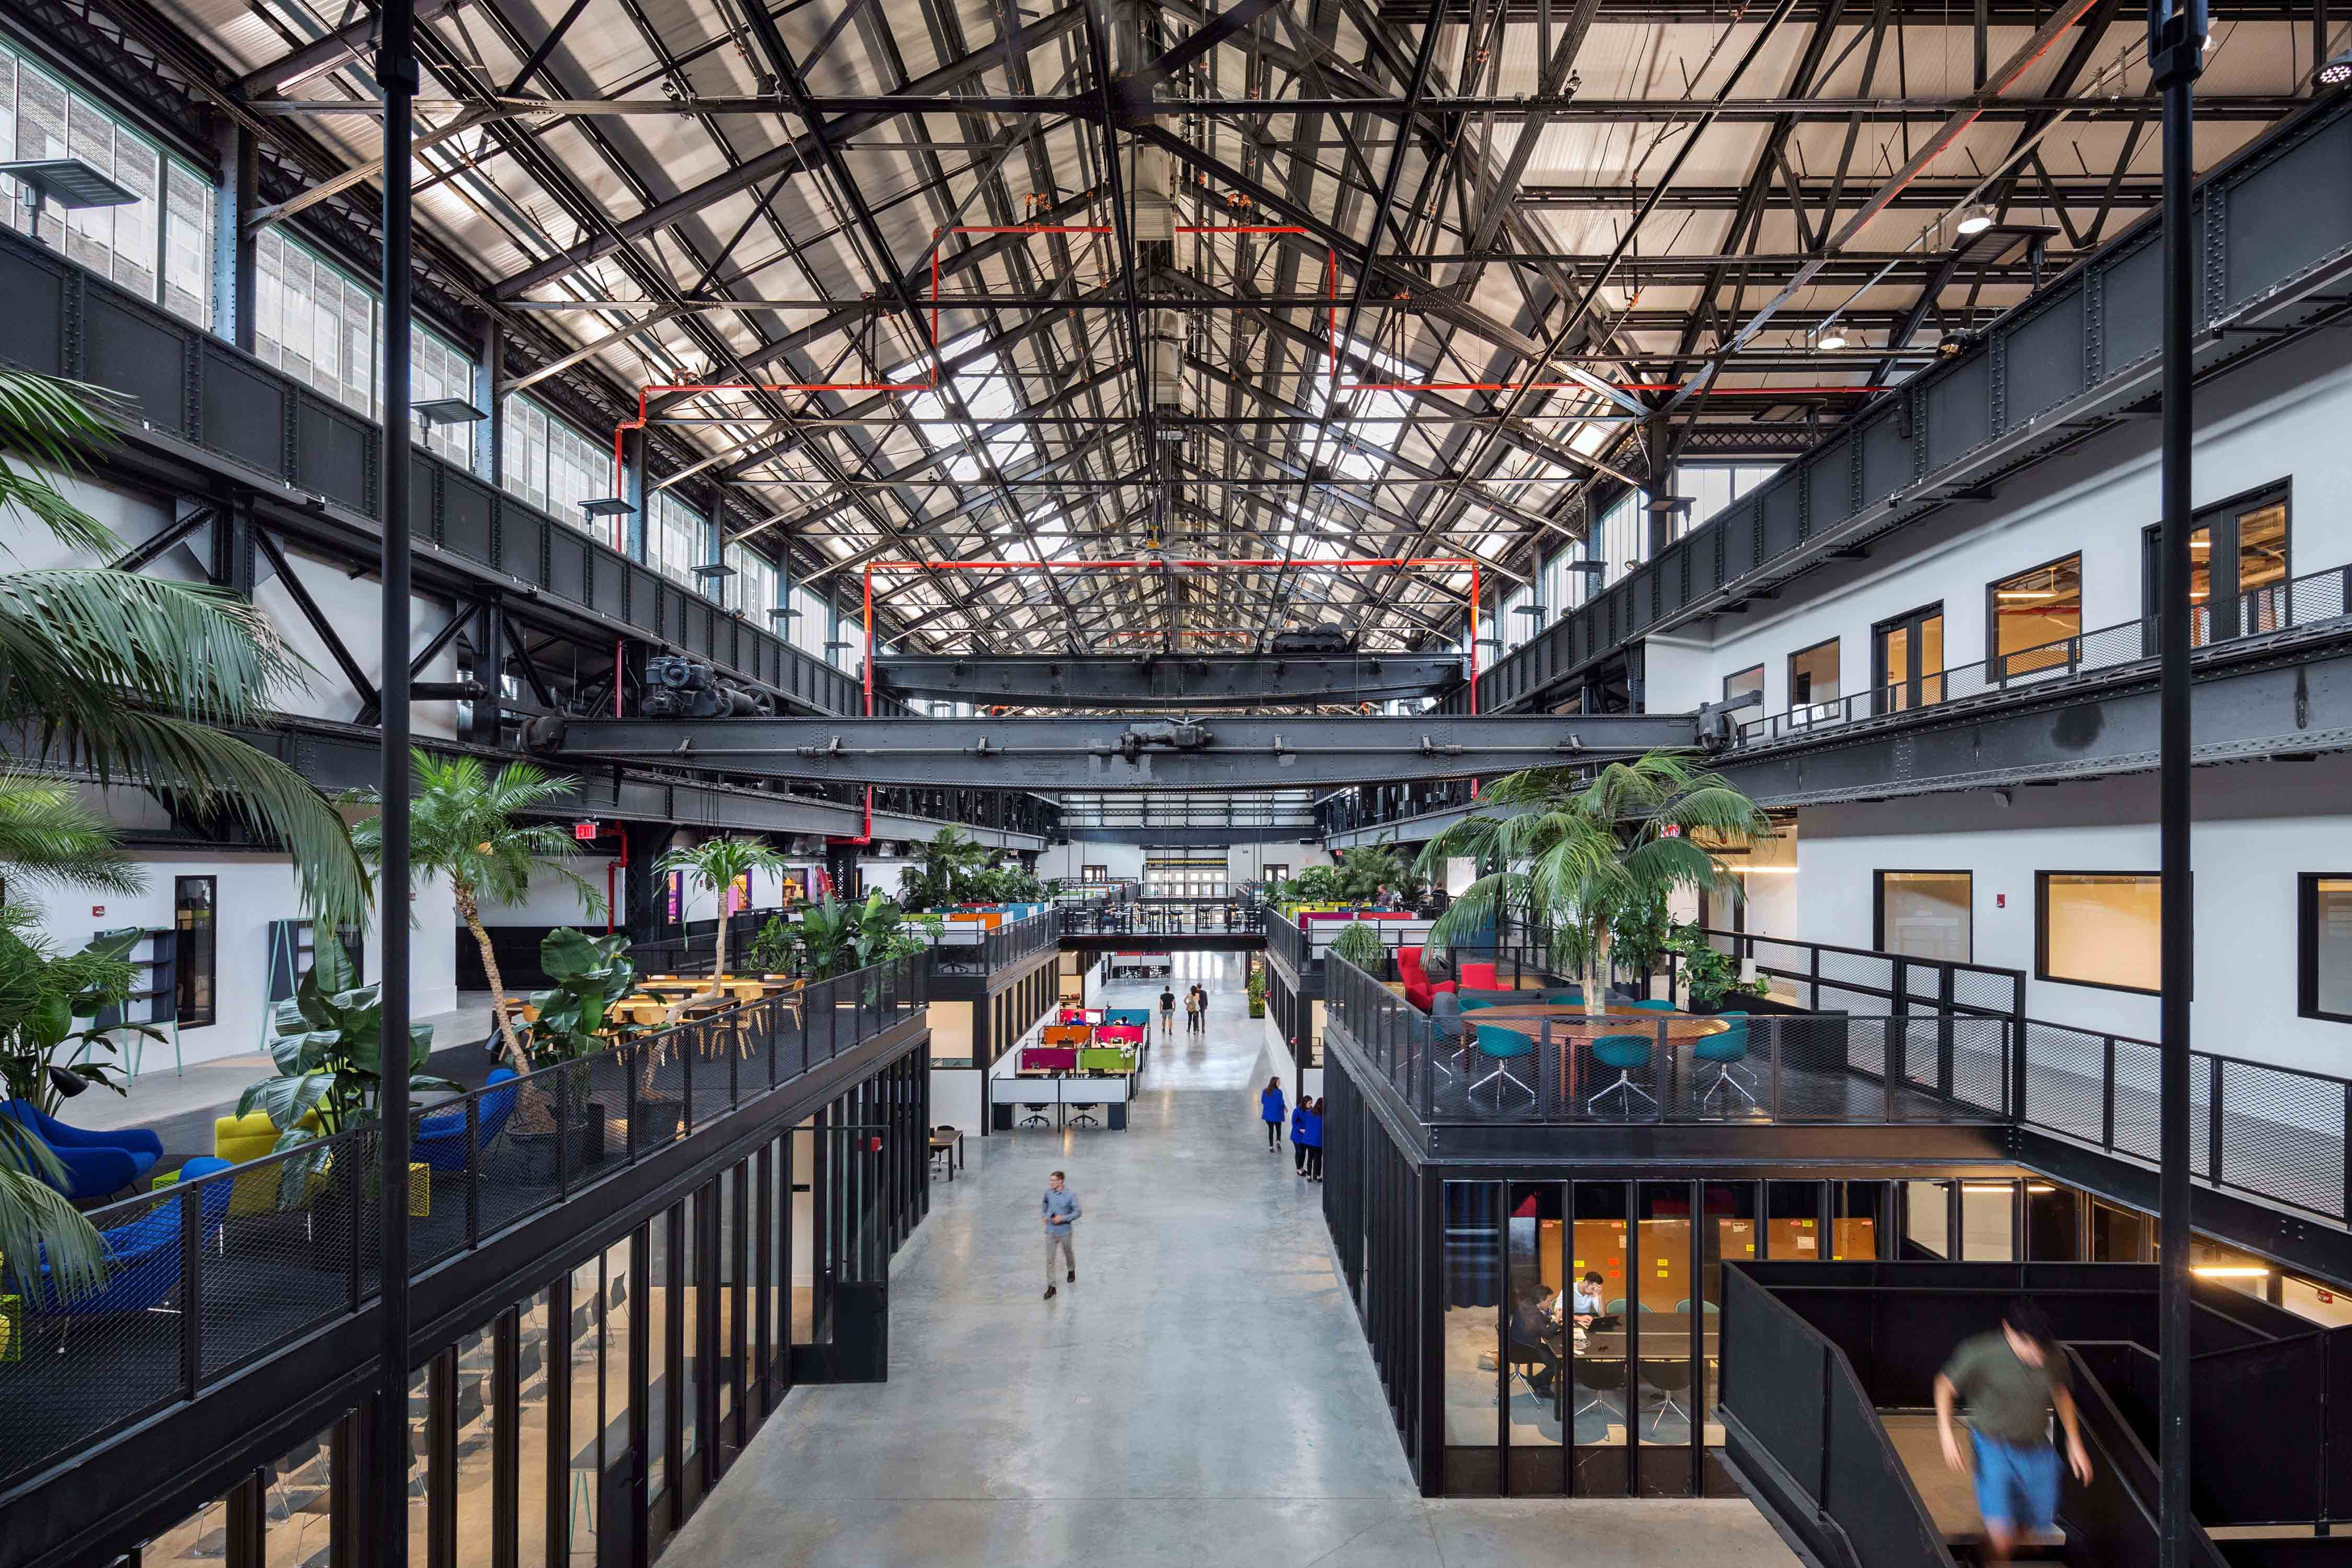 Archtober Building Of The Day 12 New Lab Brooklyn Navy Yard Warehouse Design Brooklyn Navy Yard Architect